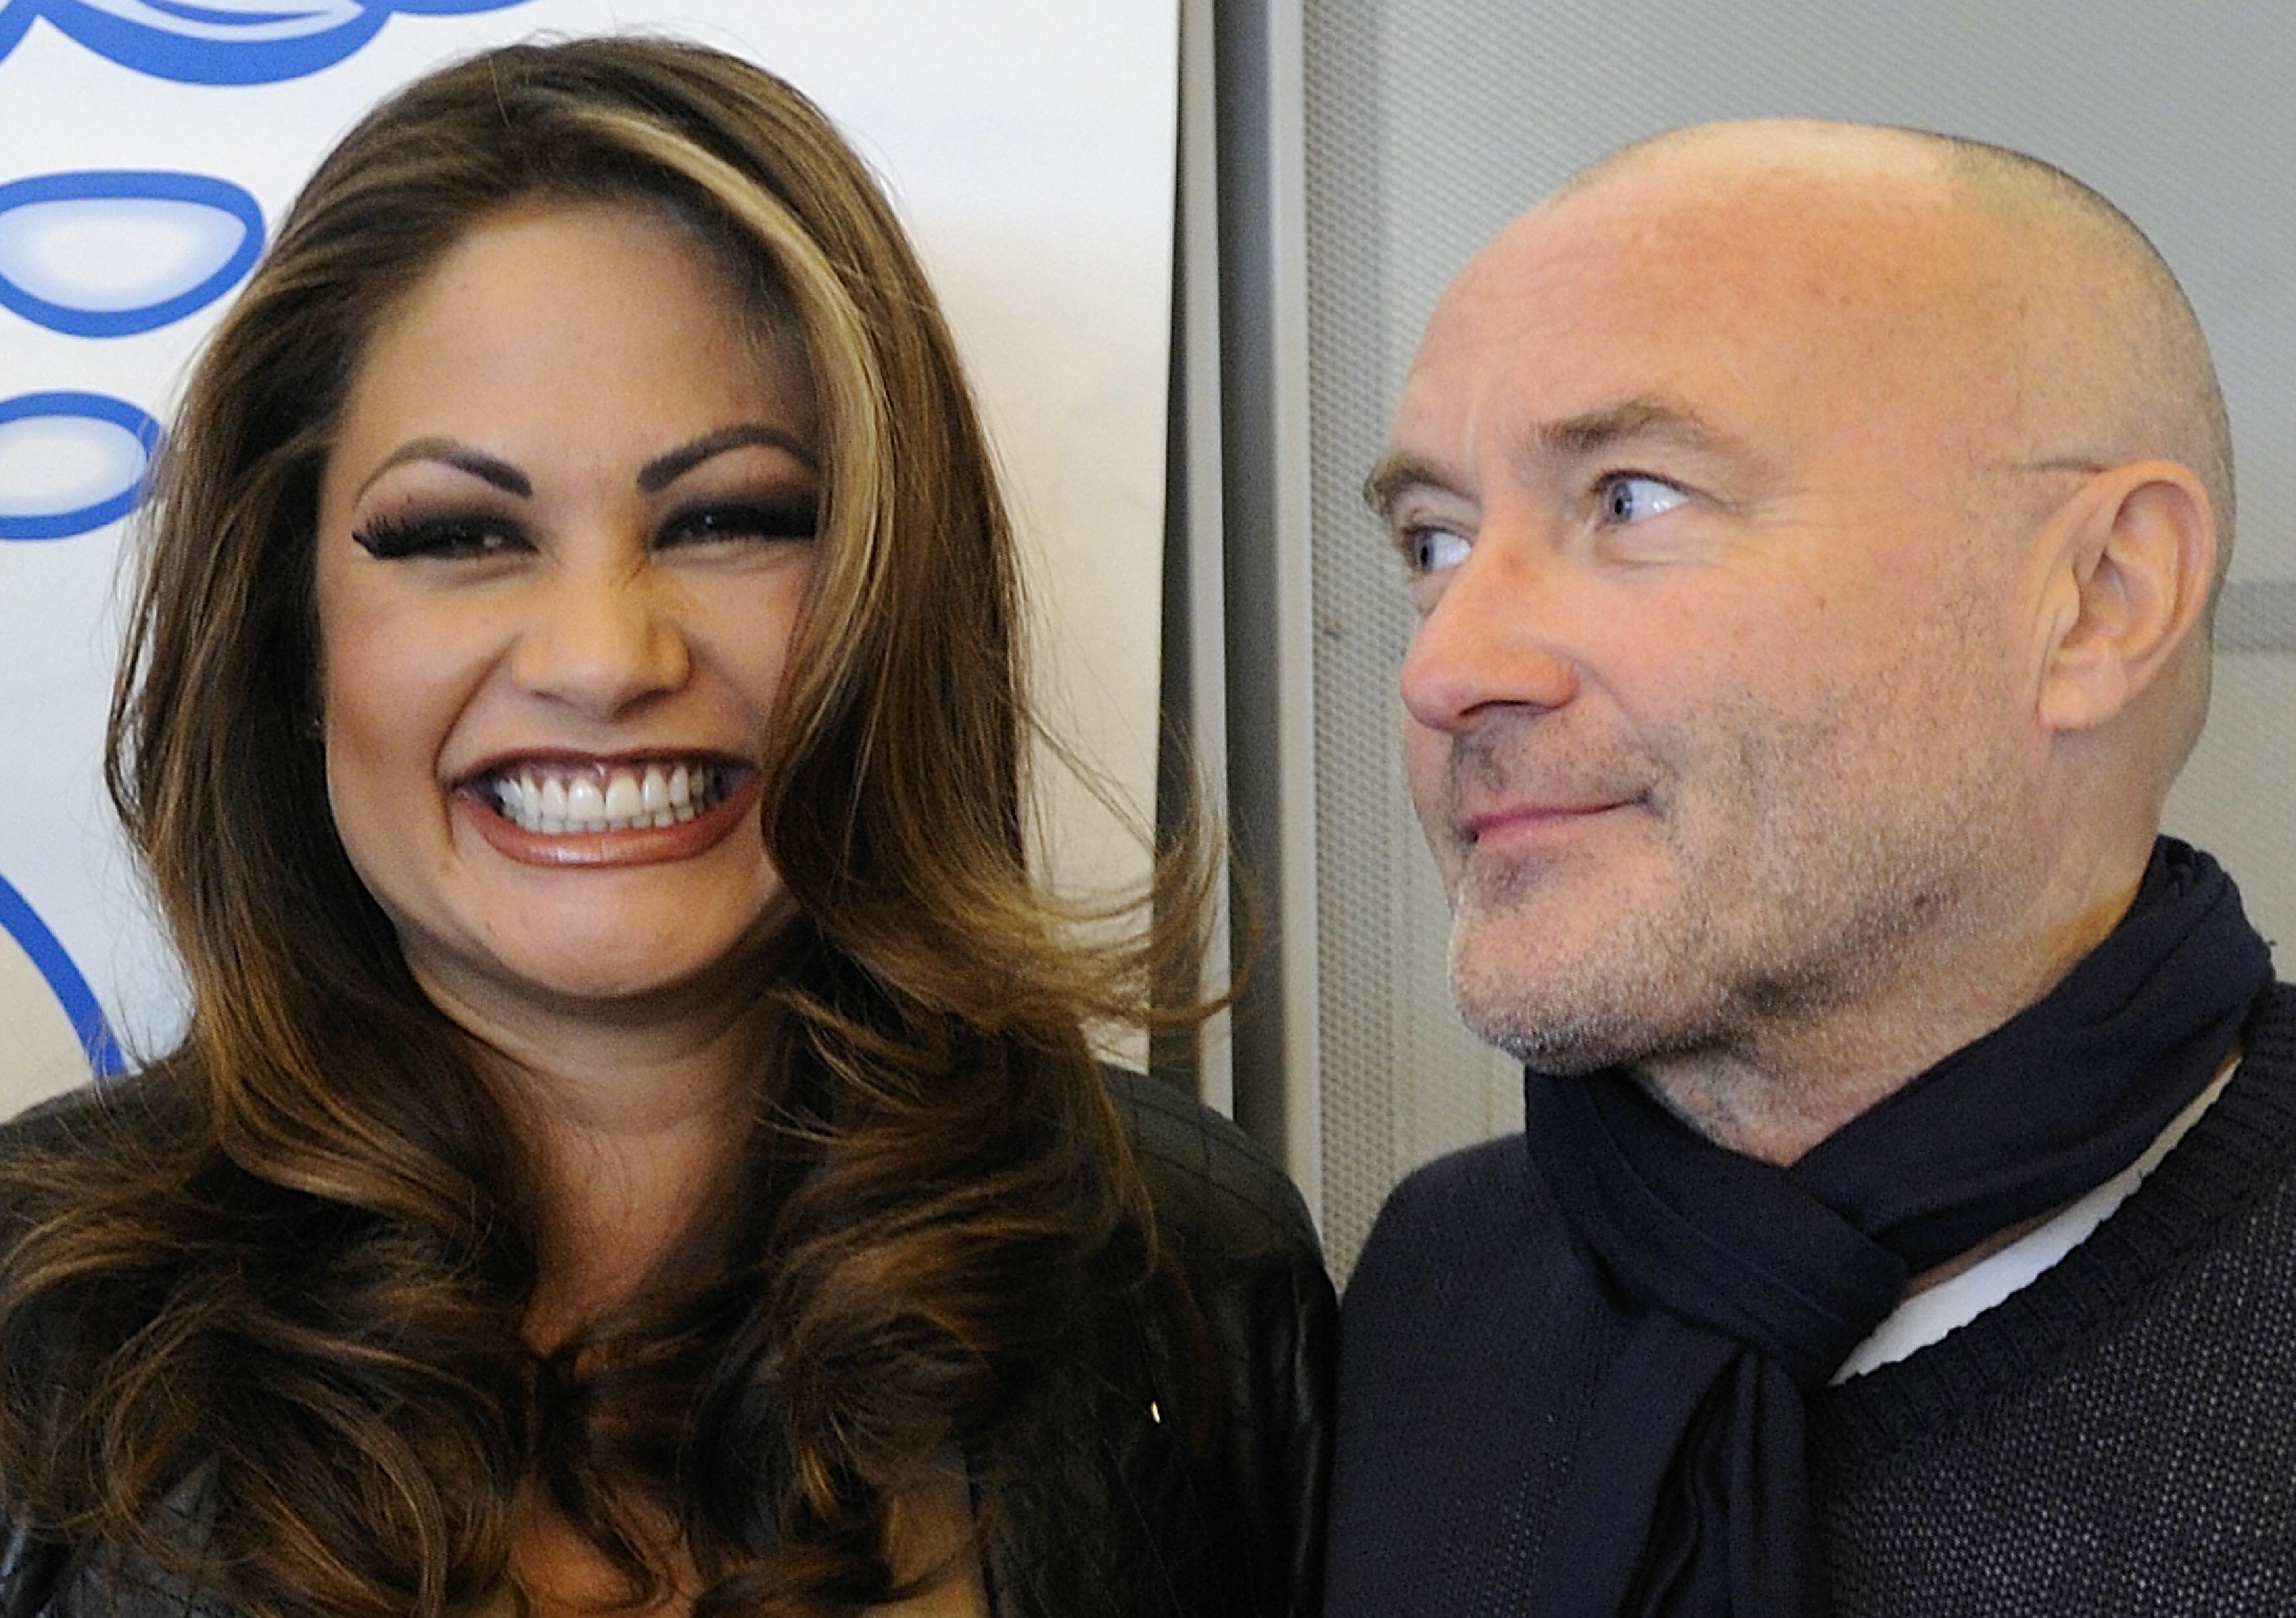 Phil Collins Sues Ex, Alleges Extortion To Get Her To Vacate $33M Mansion